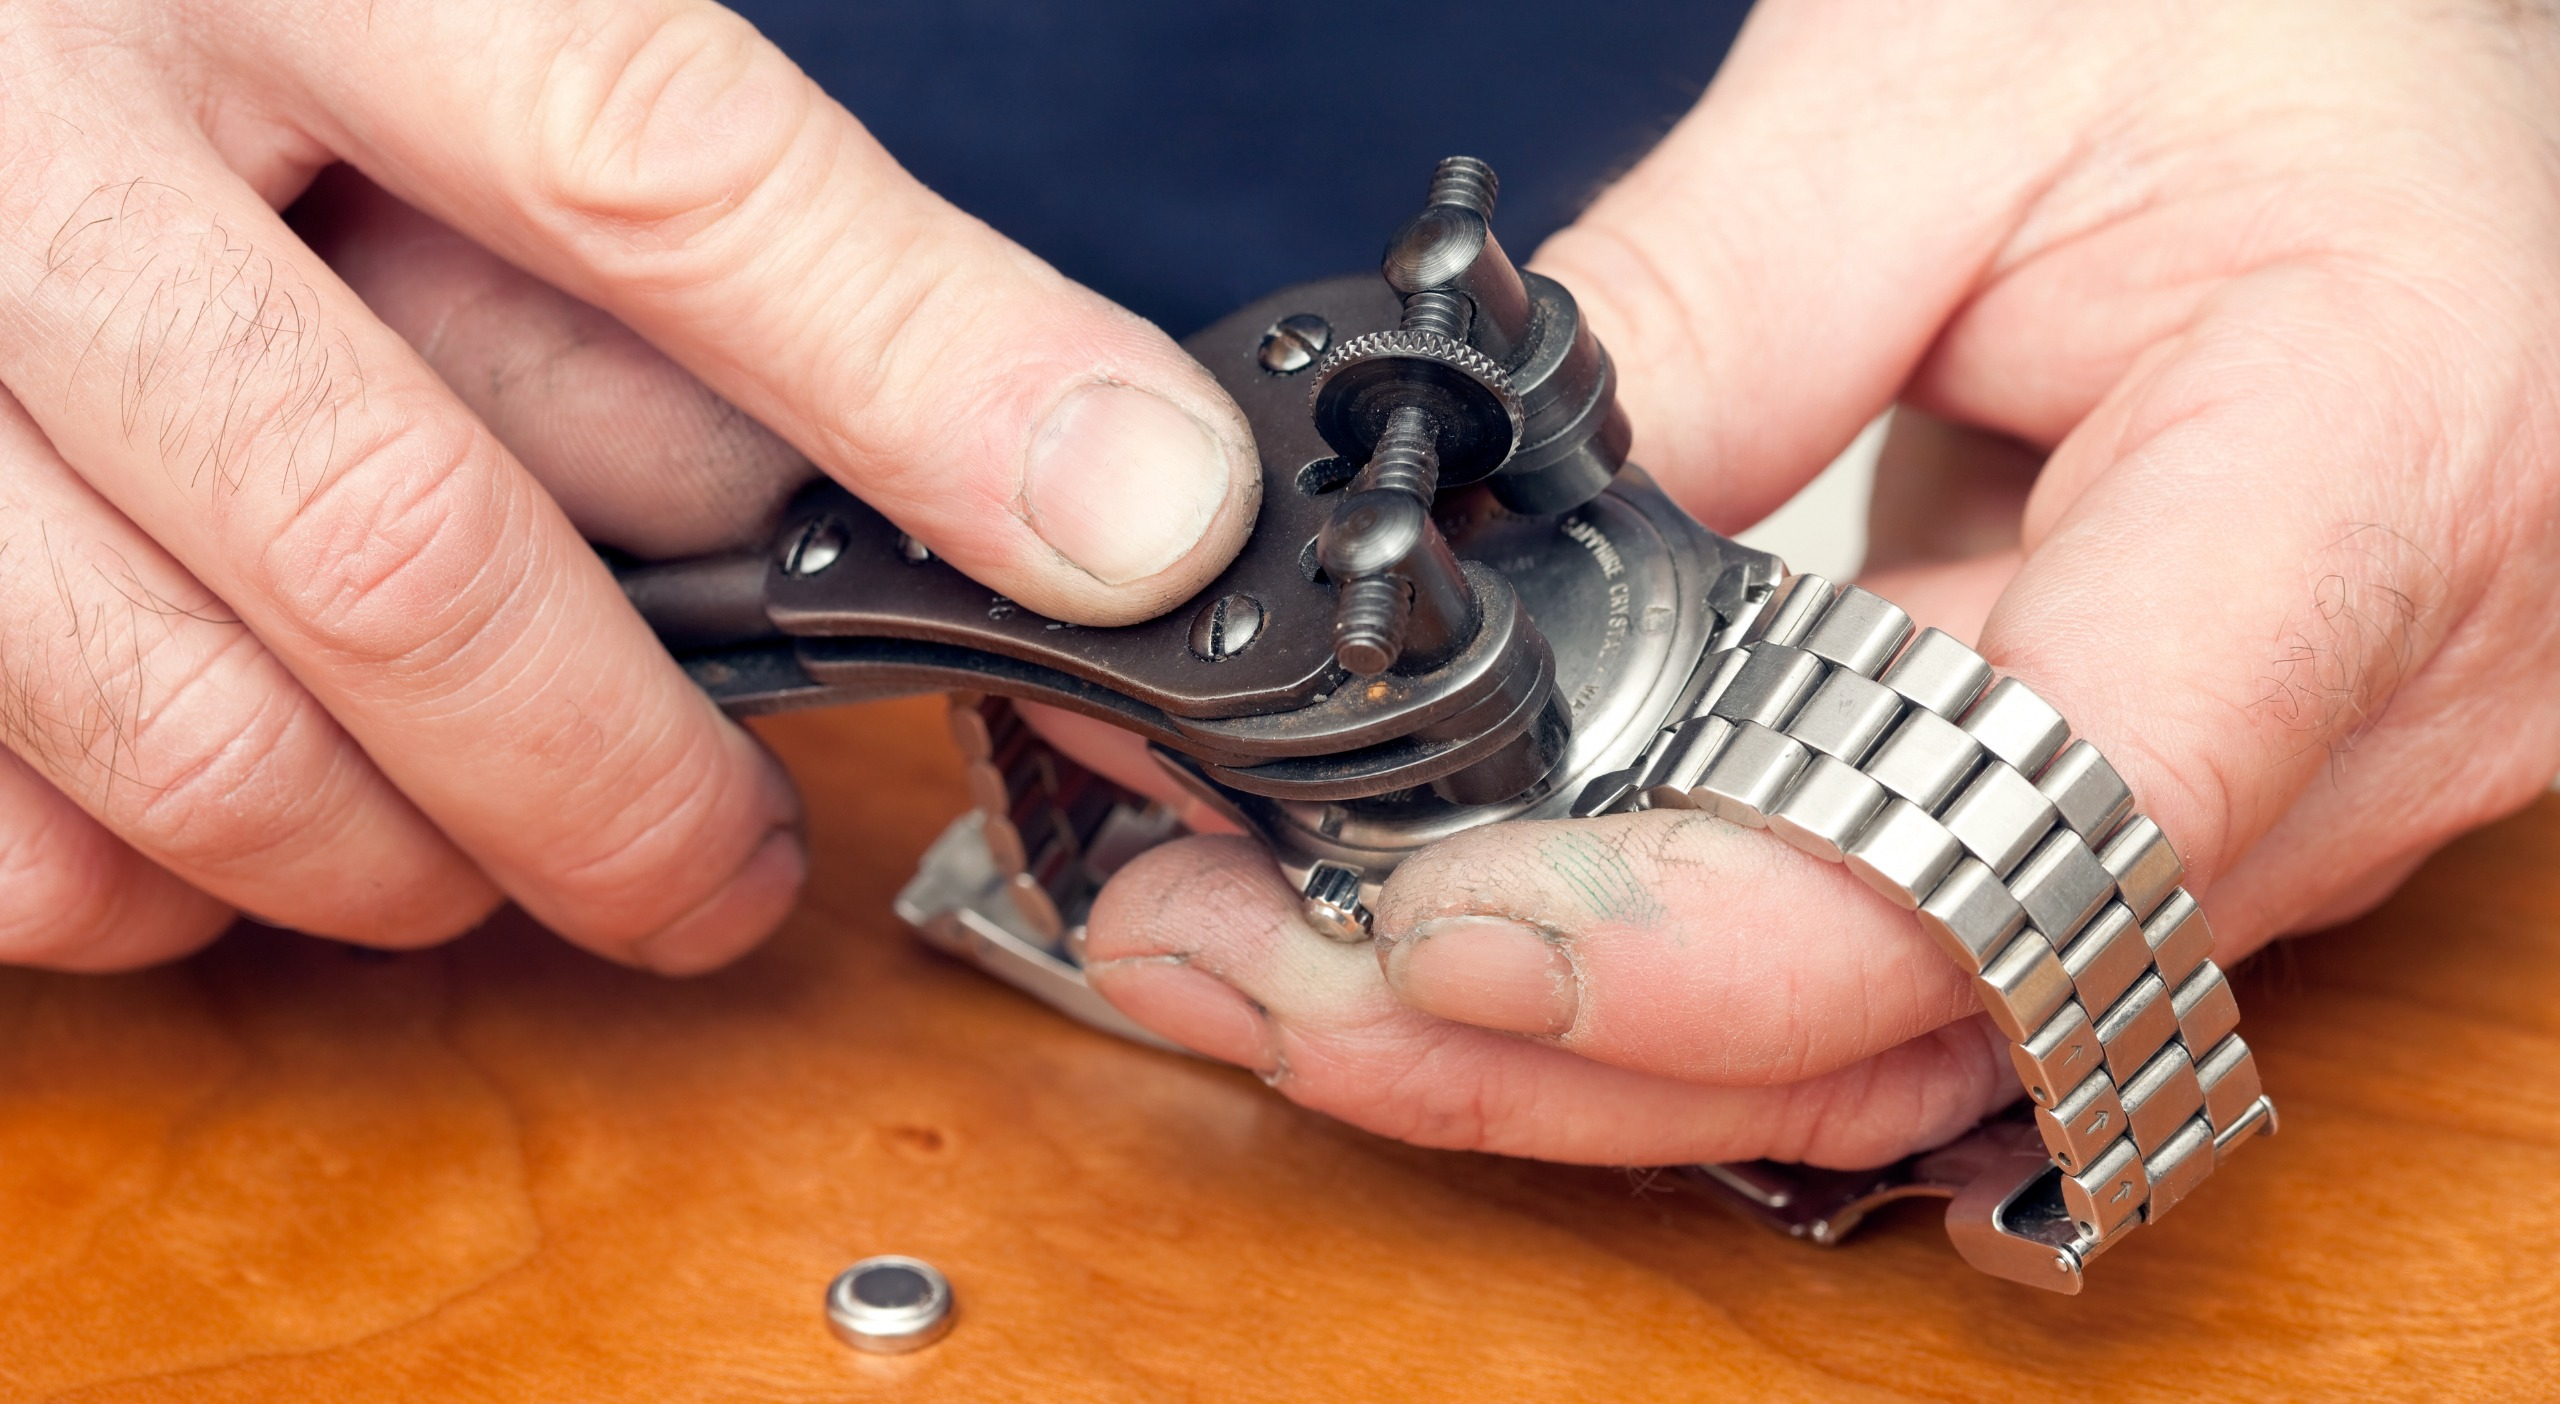 How To Change A Fossil Watch Battery: Quick Tips